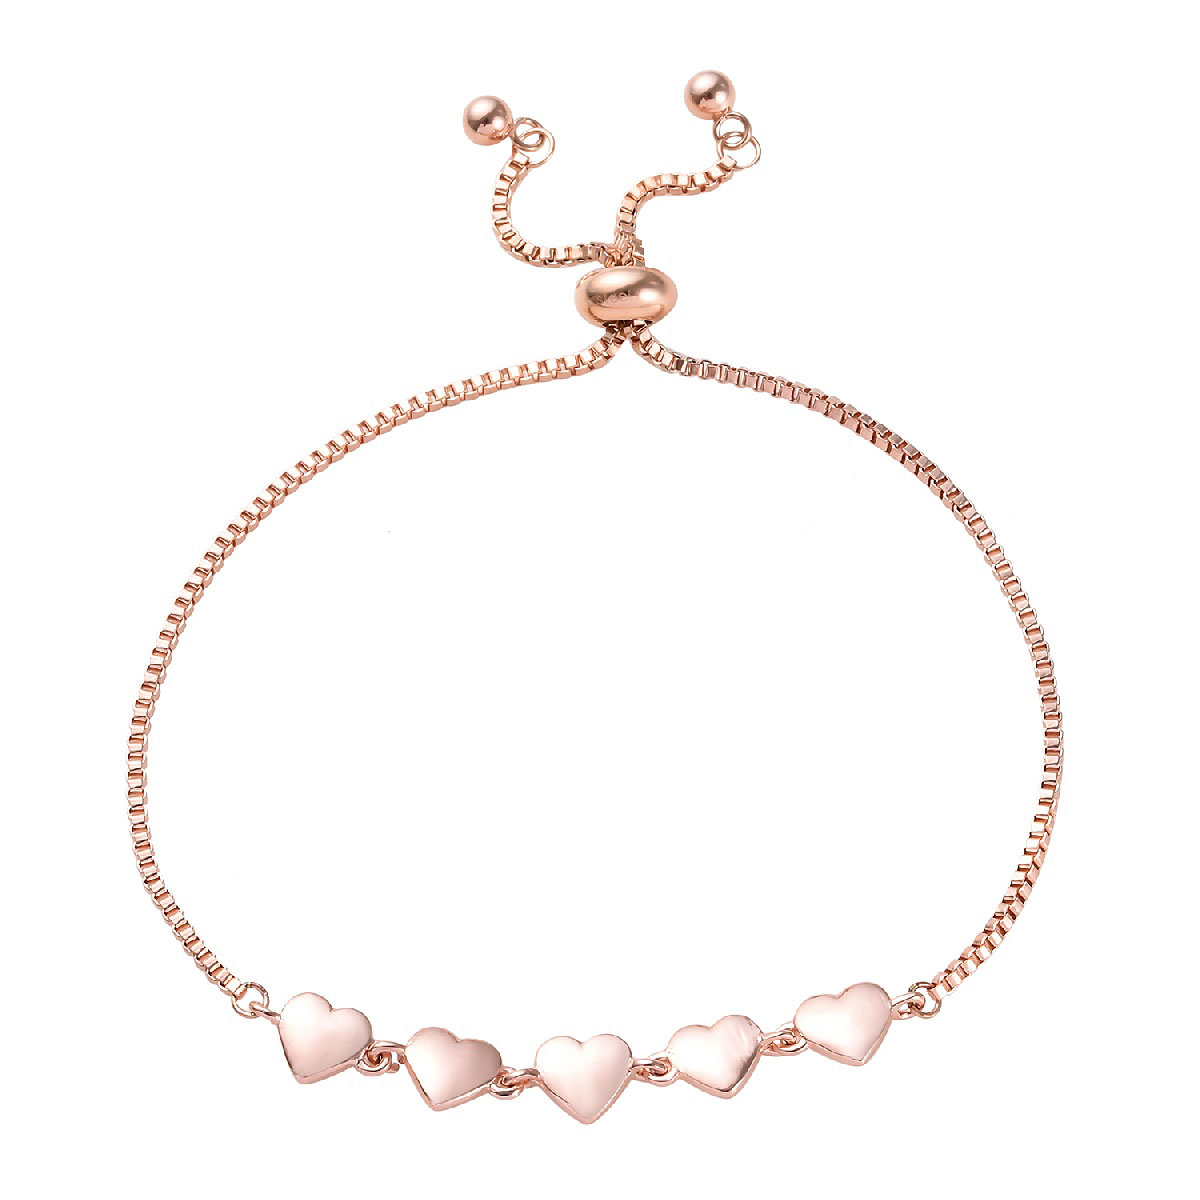 Measures 16.9x10.2mm 14k Rose Gold Polished Solid 3-Dimensional Ballet Slippers Charm